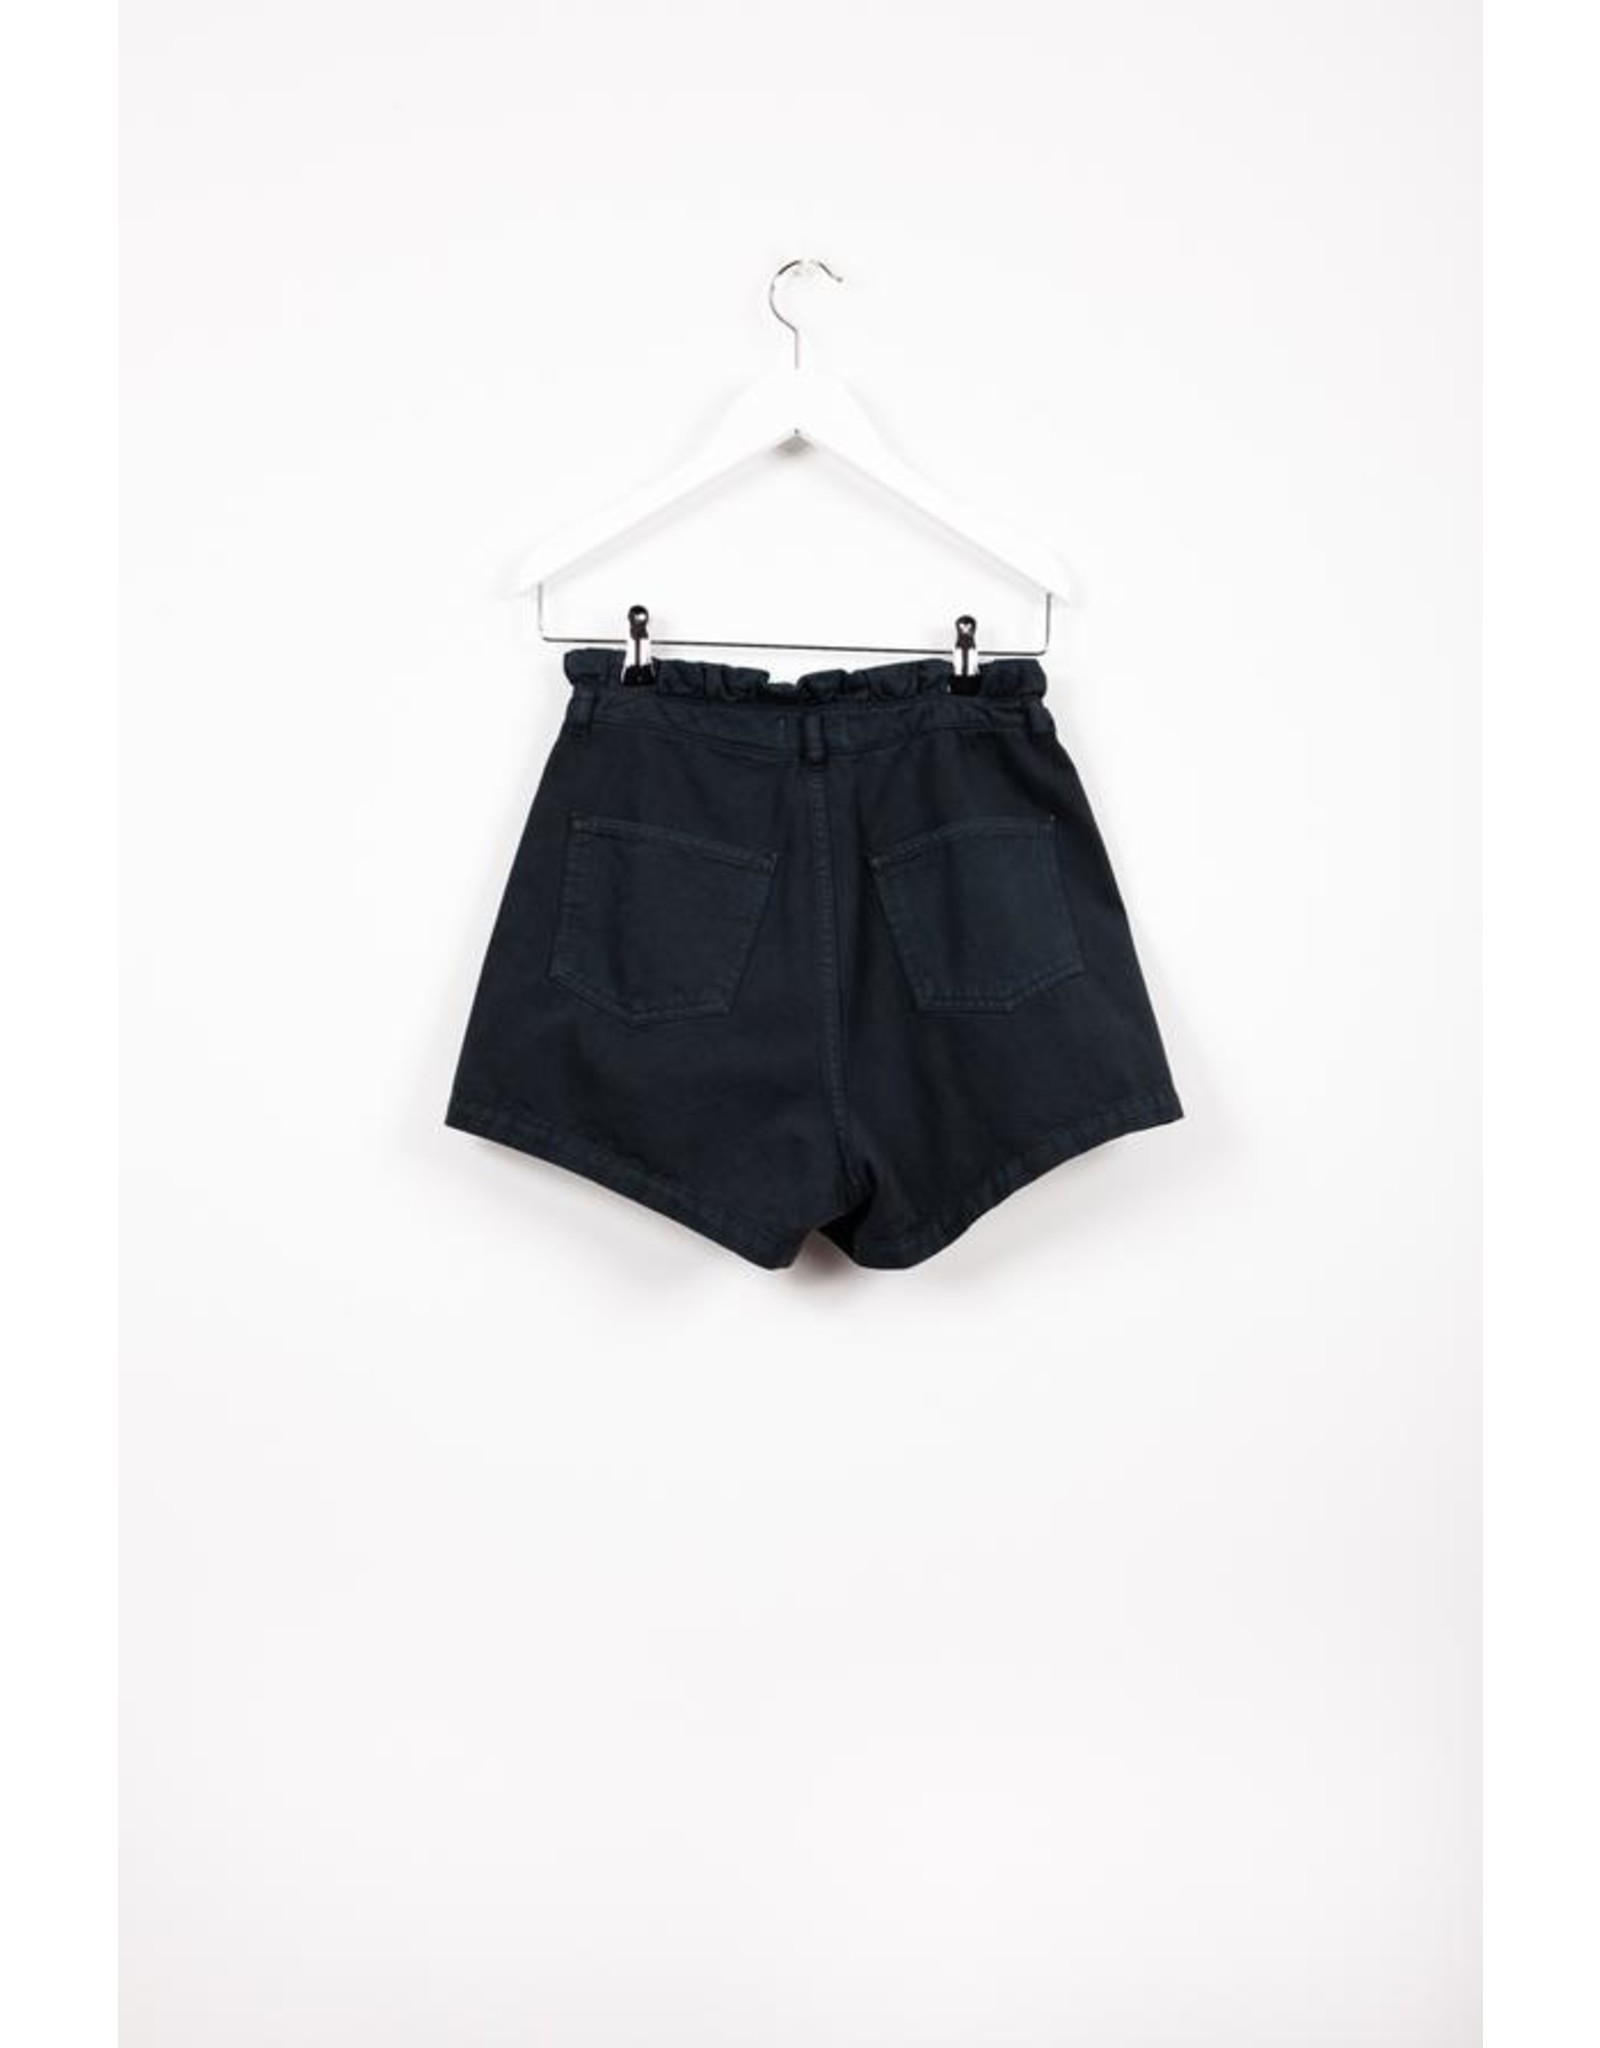 IND SS21 Jimmy evening shorts